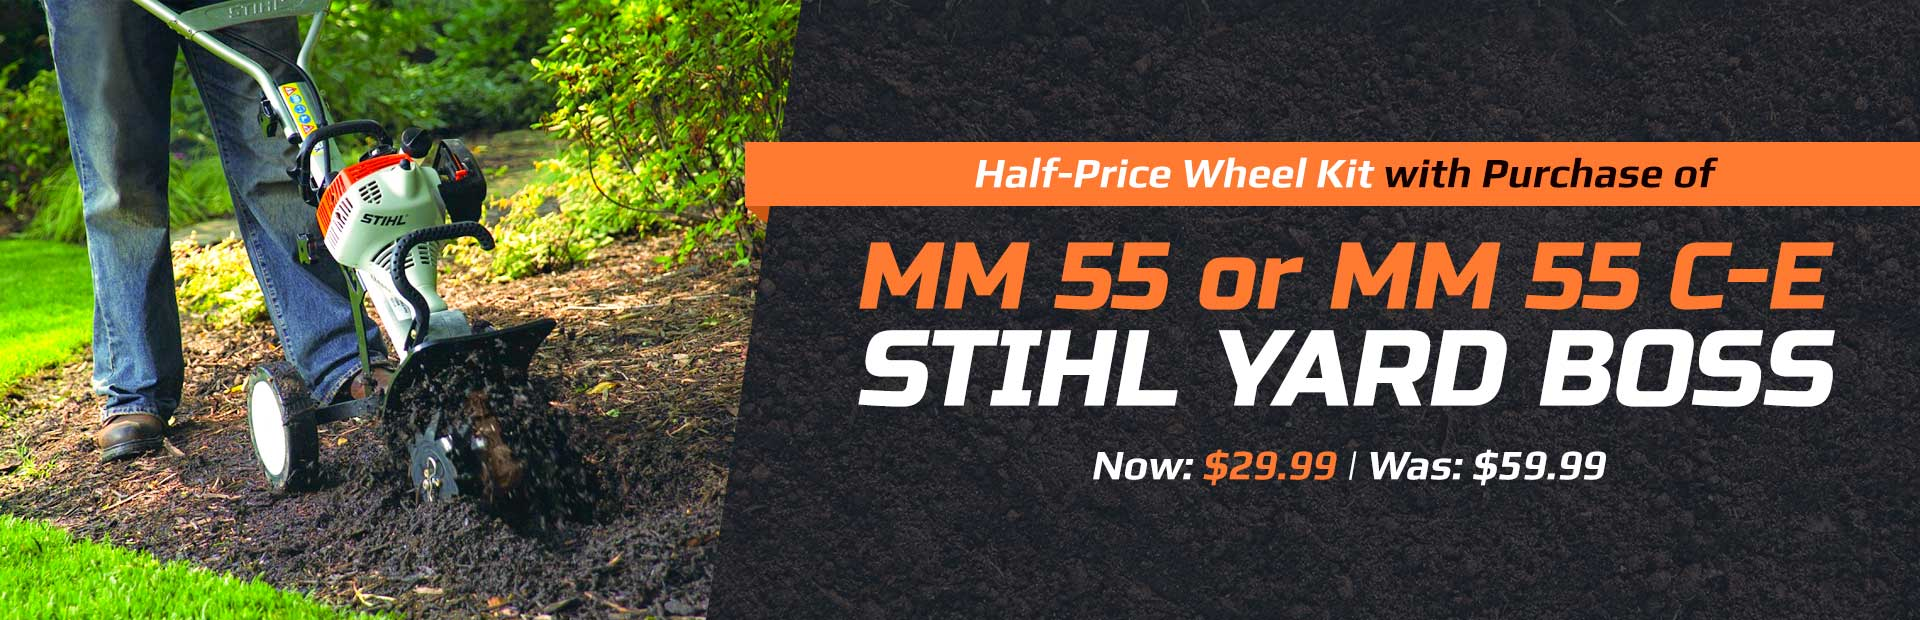 Get a half-price wheel kit with the purchase of the MM 55 or MM 55 C-E STIHL YARD BOSS!